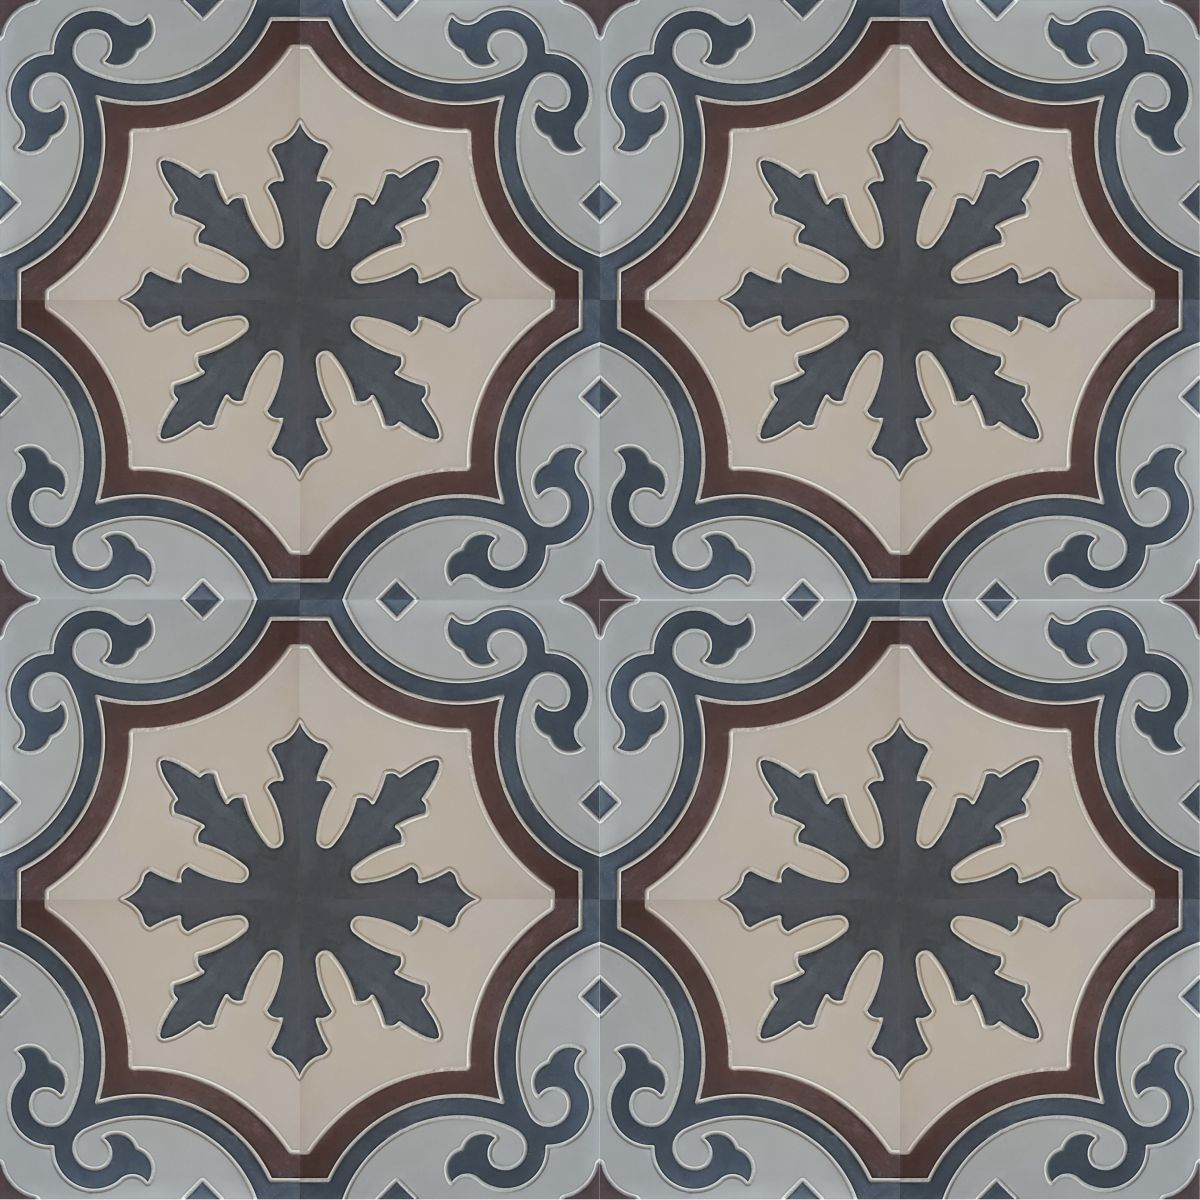 MOROCCAN TILES out of SISTROM CONCRETE